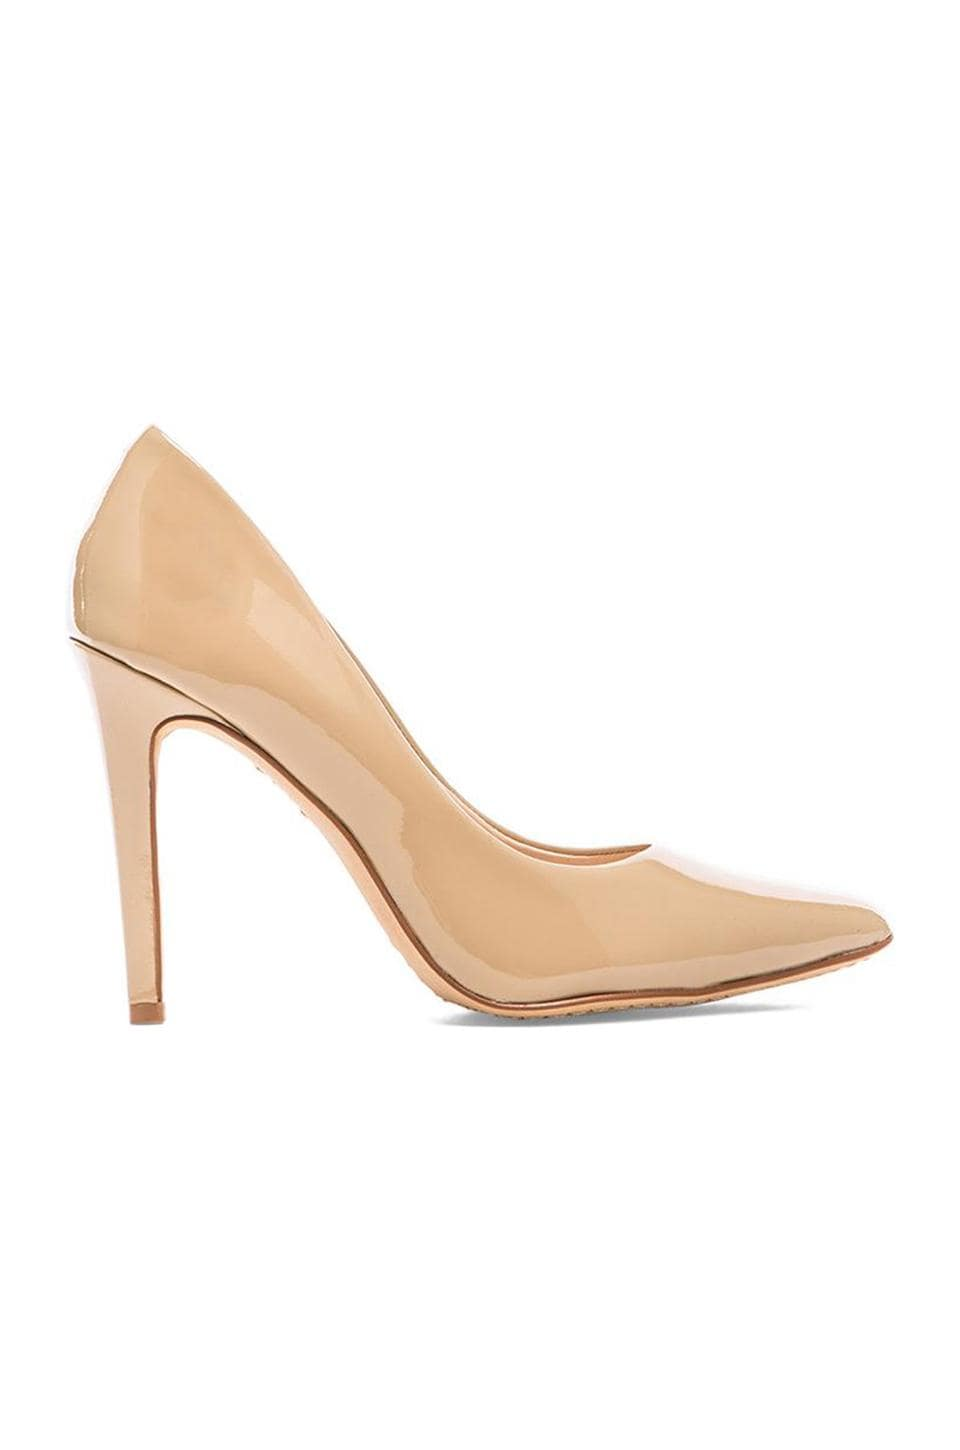 Vince Camuto Kain Patent Leather Heel in Nude